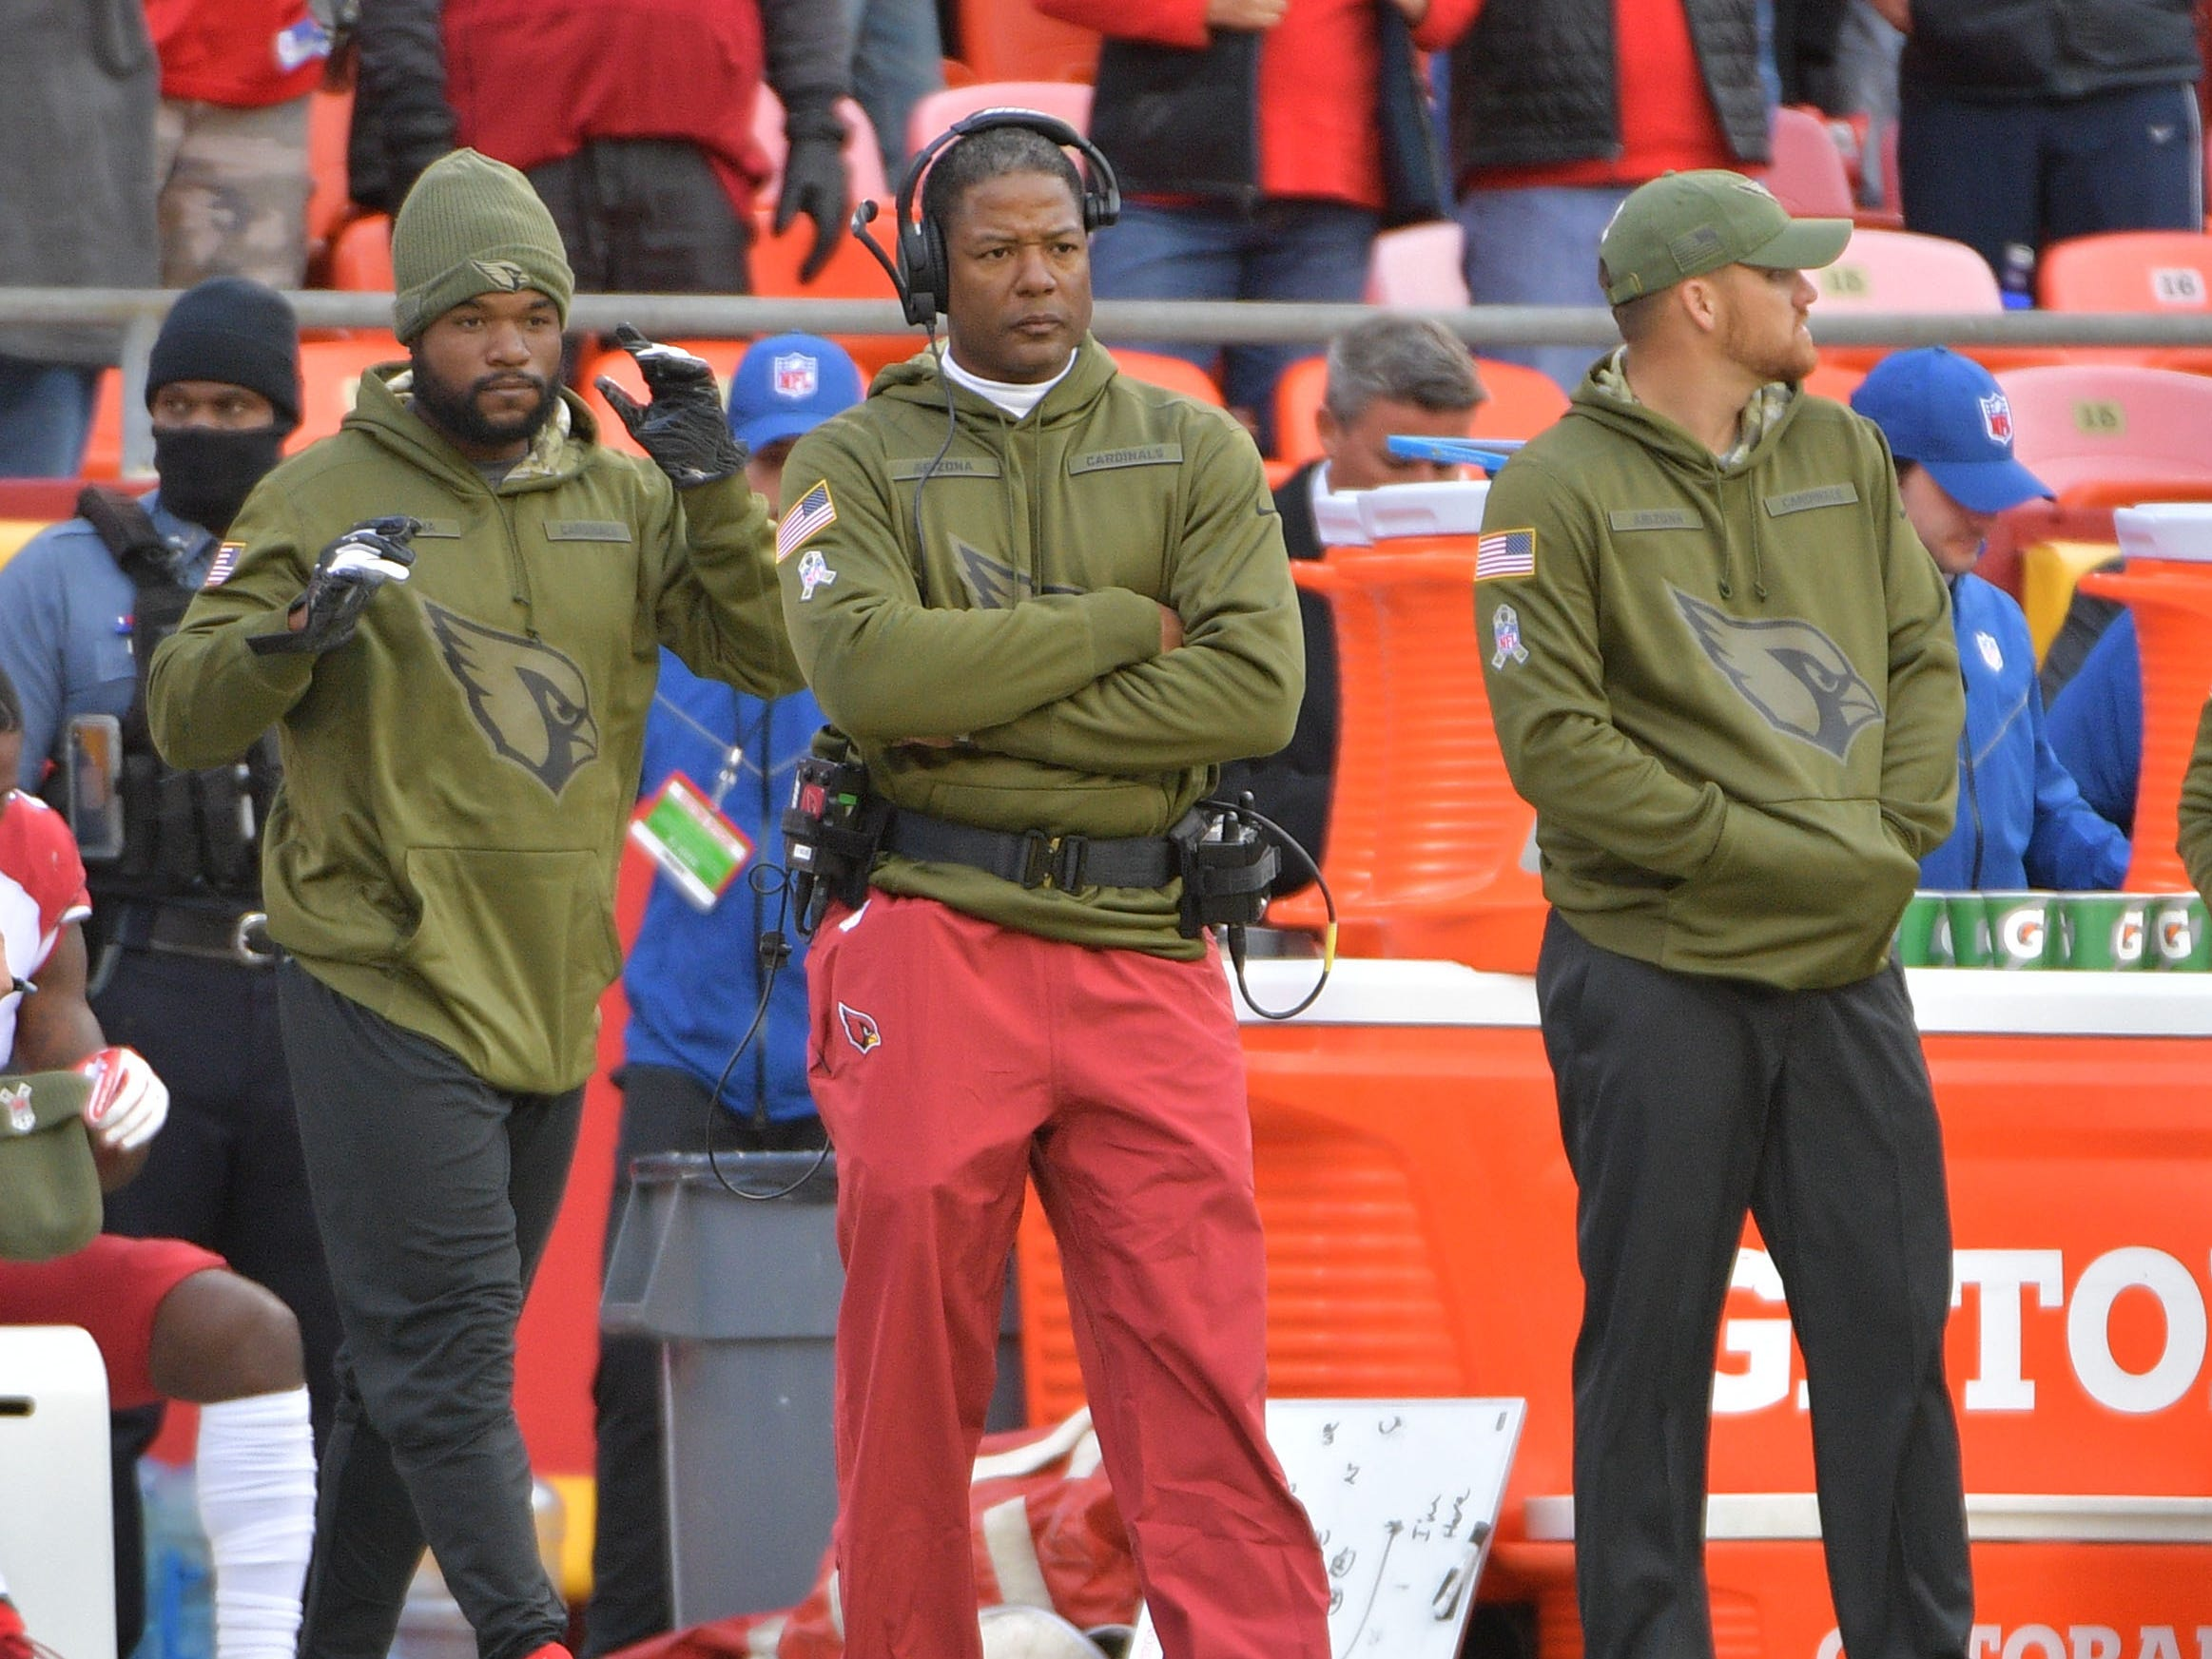 Nov 11, 2018; Kansas City, MO, USA; Arizona Cardinals head coach Steve Wilks watches play on the sidelines during the second half against the Kansas City Chiefs at Arrowhead Stadium. The Chiefs won 26-14. Mandatory Credit: Denny Medley-USA TODAY Sports